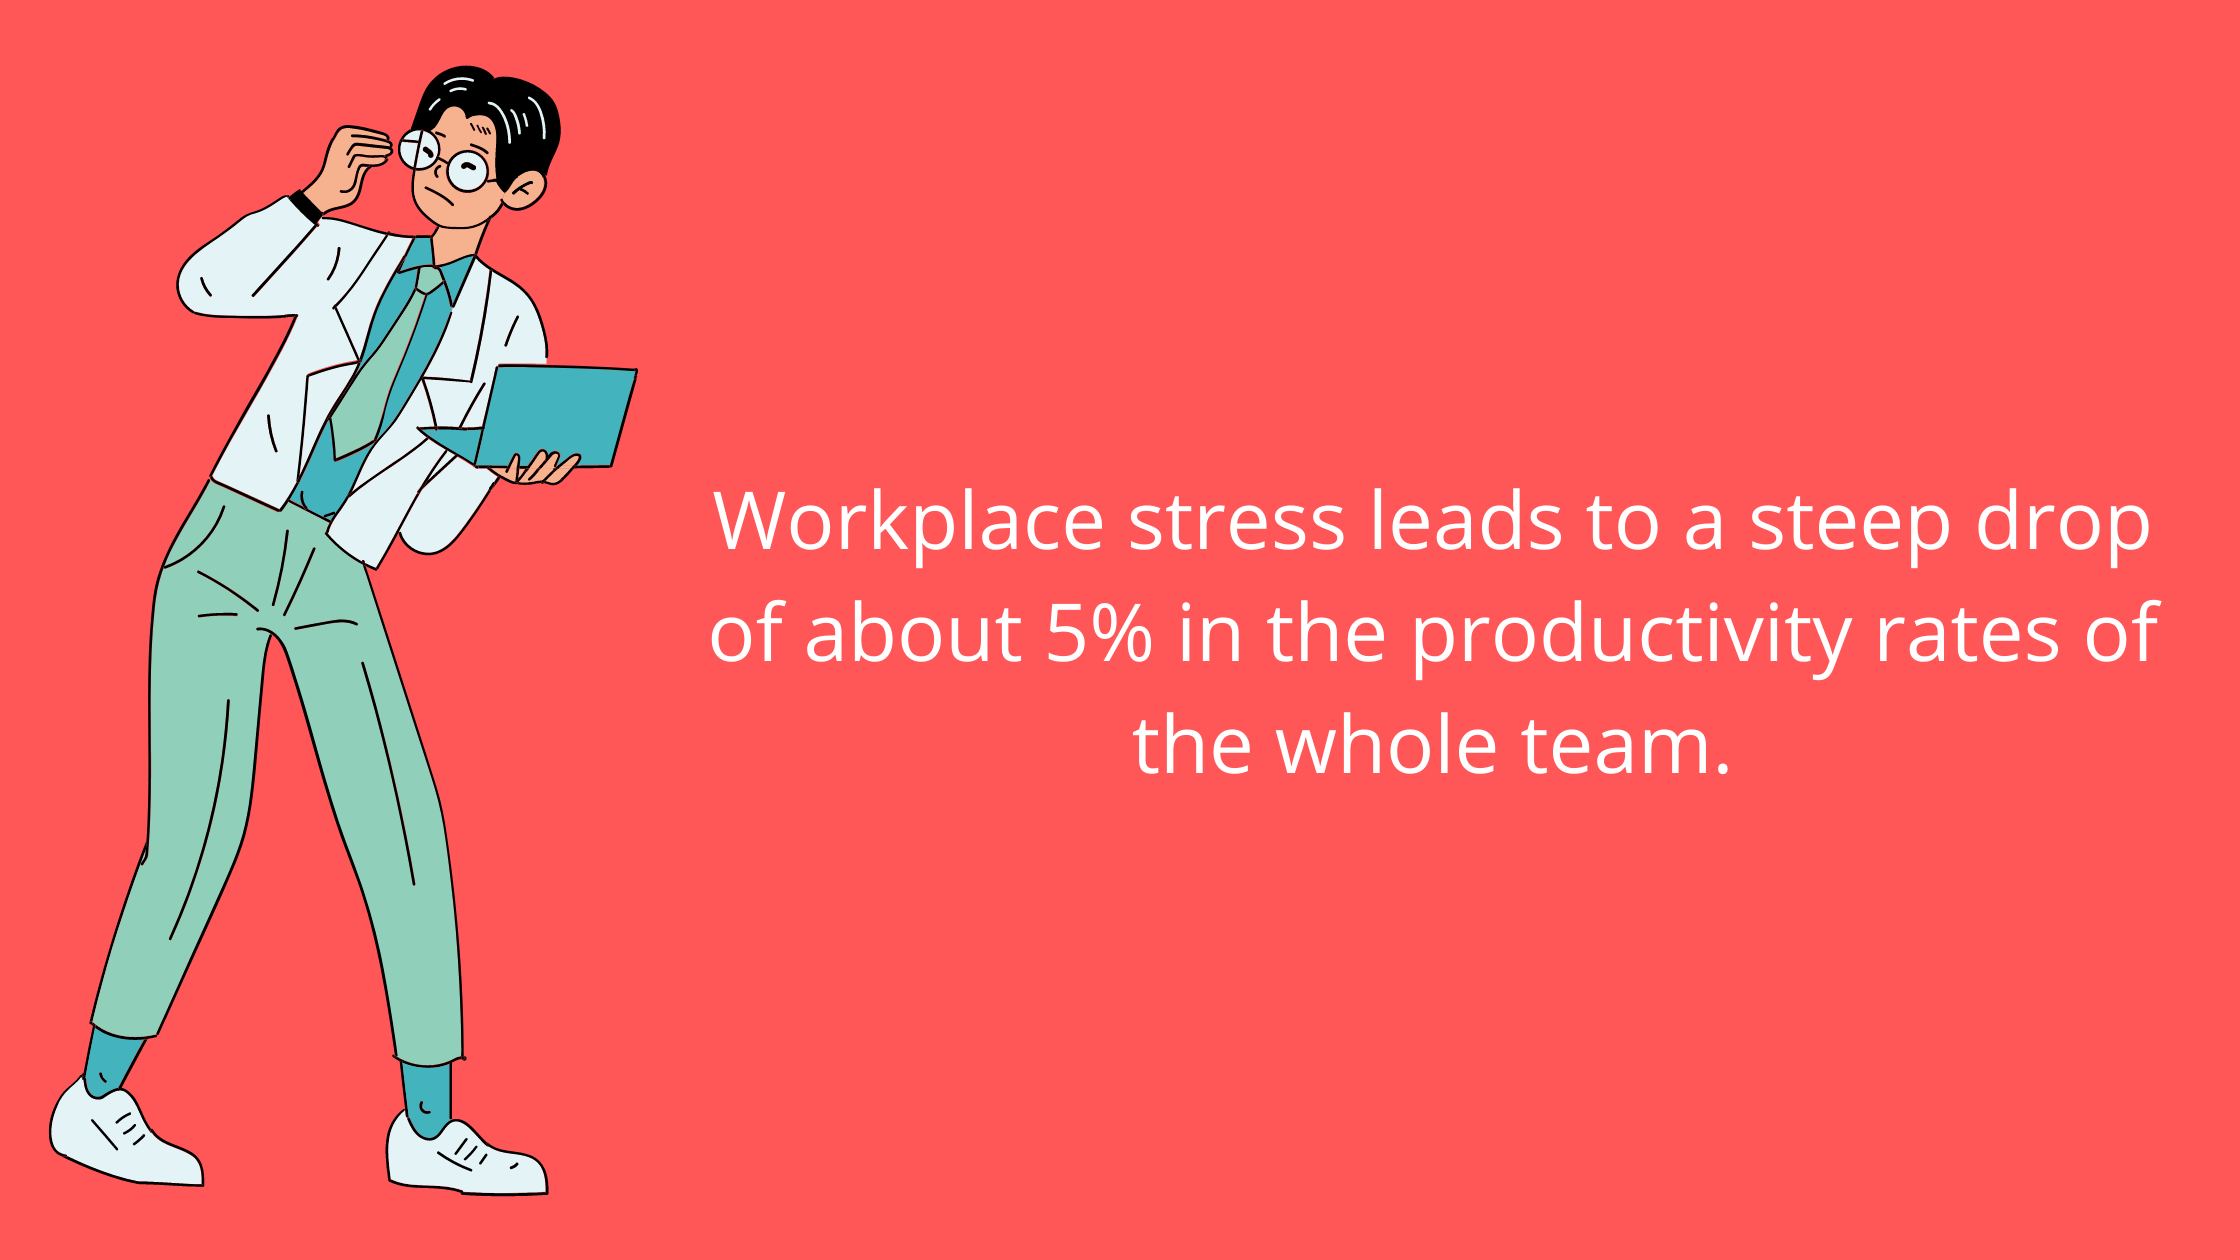 Workplace productivity stats & facts related to stress